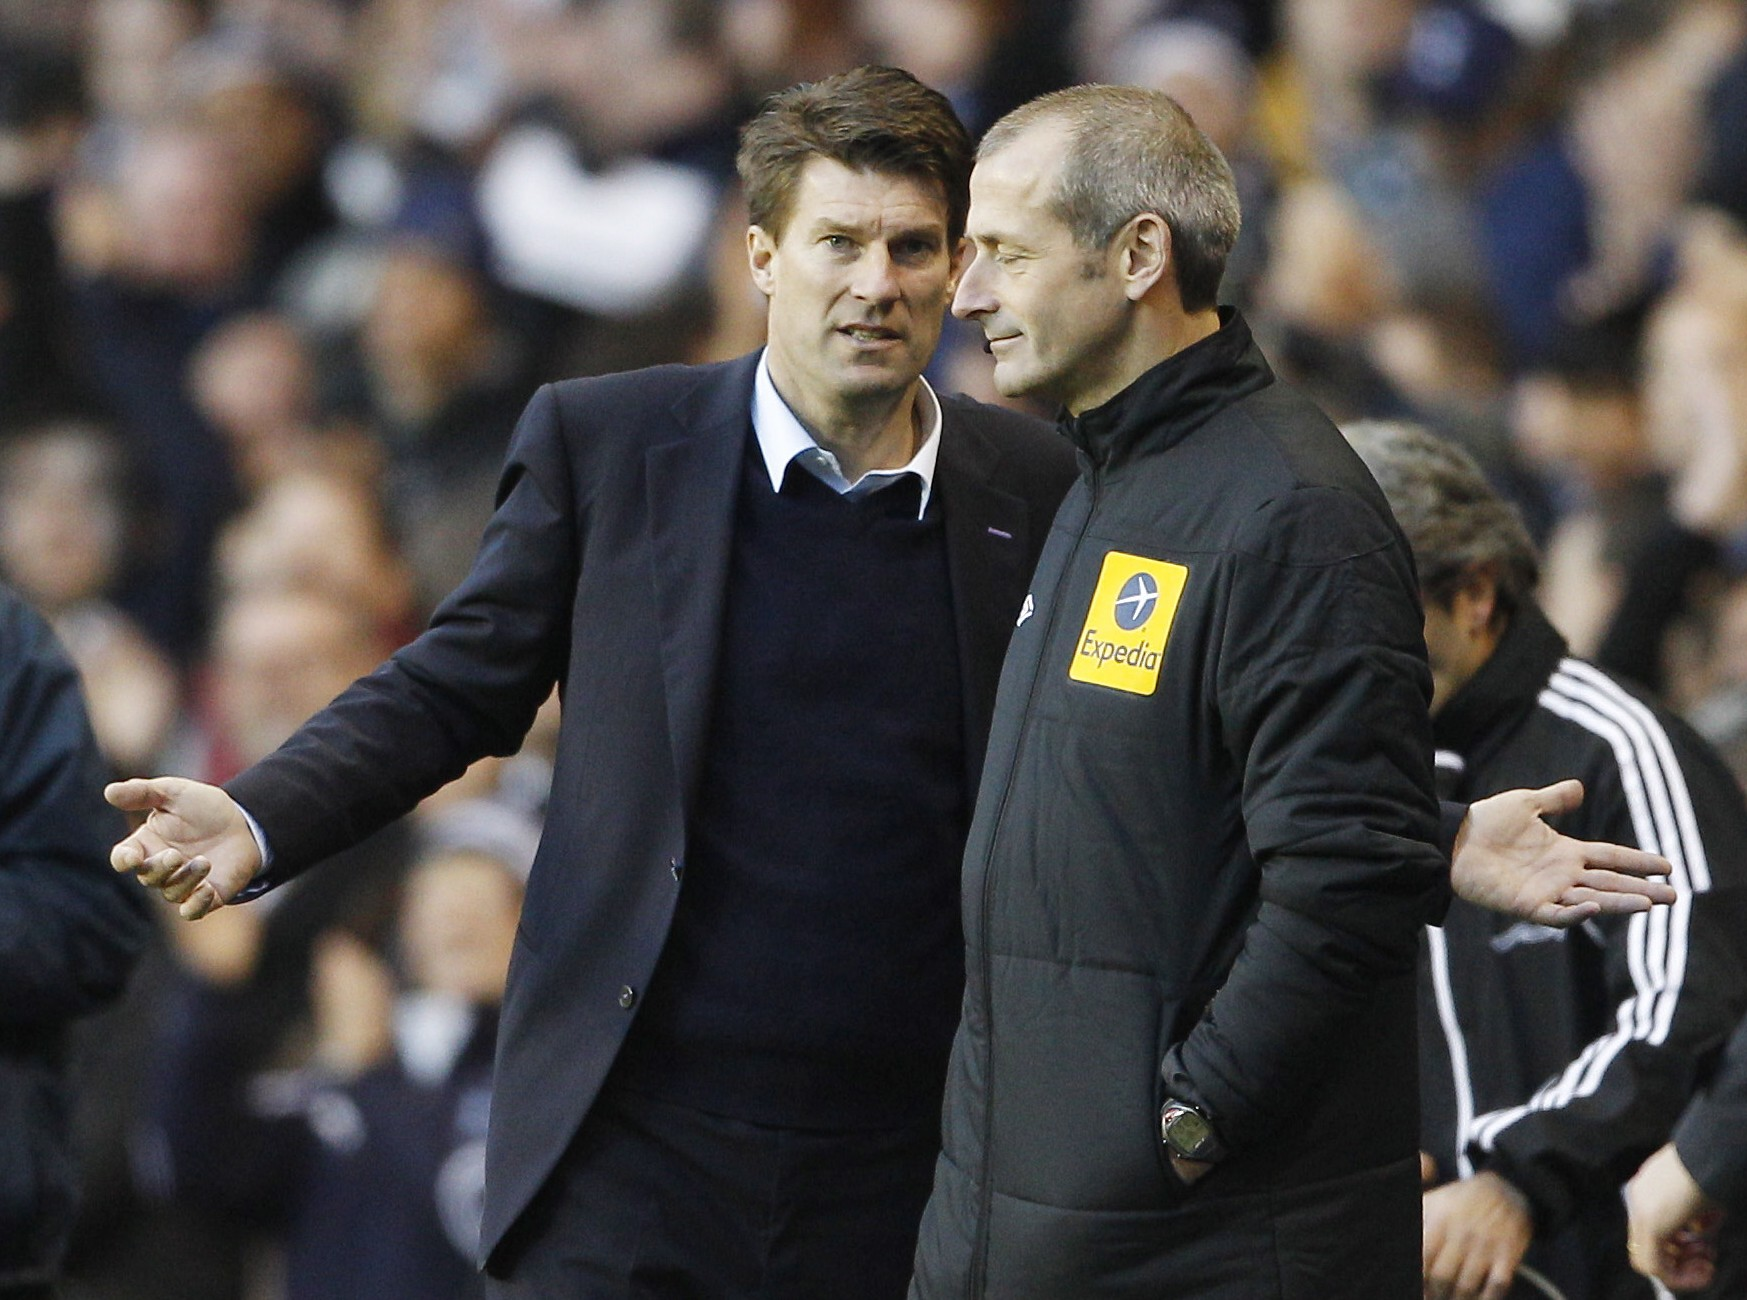 Michael Laudrup (left) was unimpressed with the performance of referee Mike Dean as his Swansea side lost 1-0 at Spurs (Picture: Reuters/Action Images)